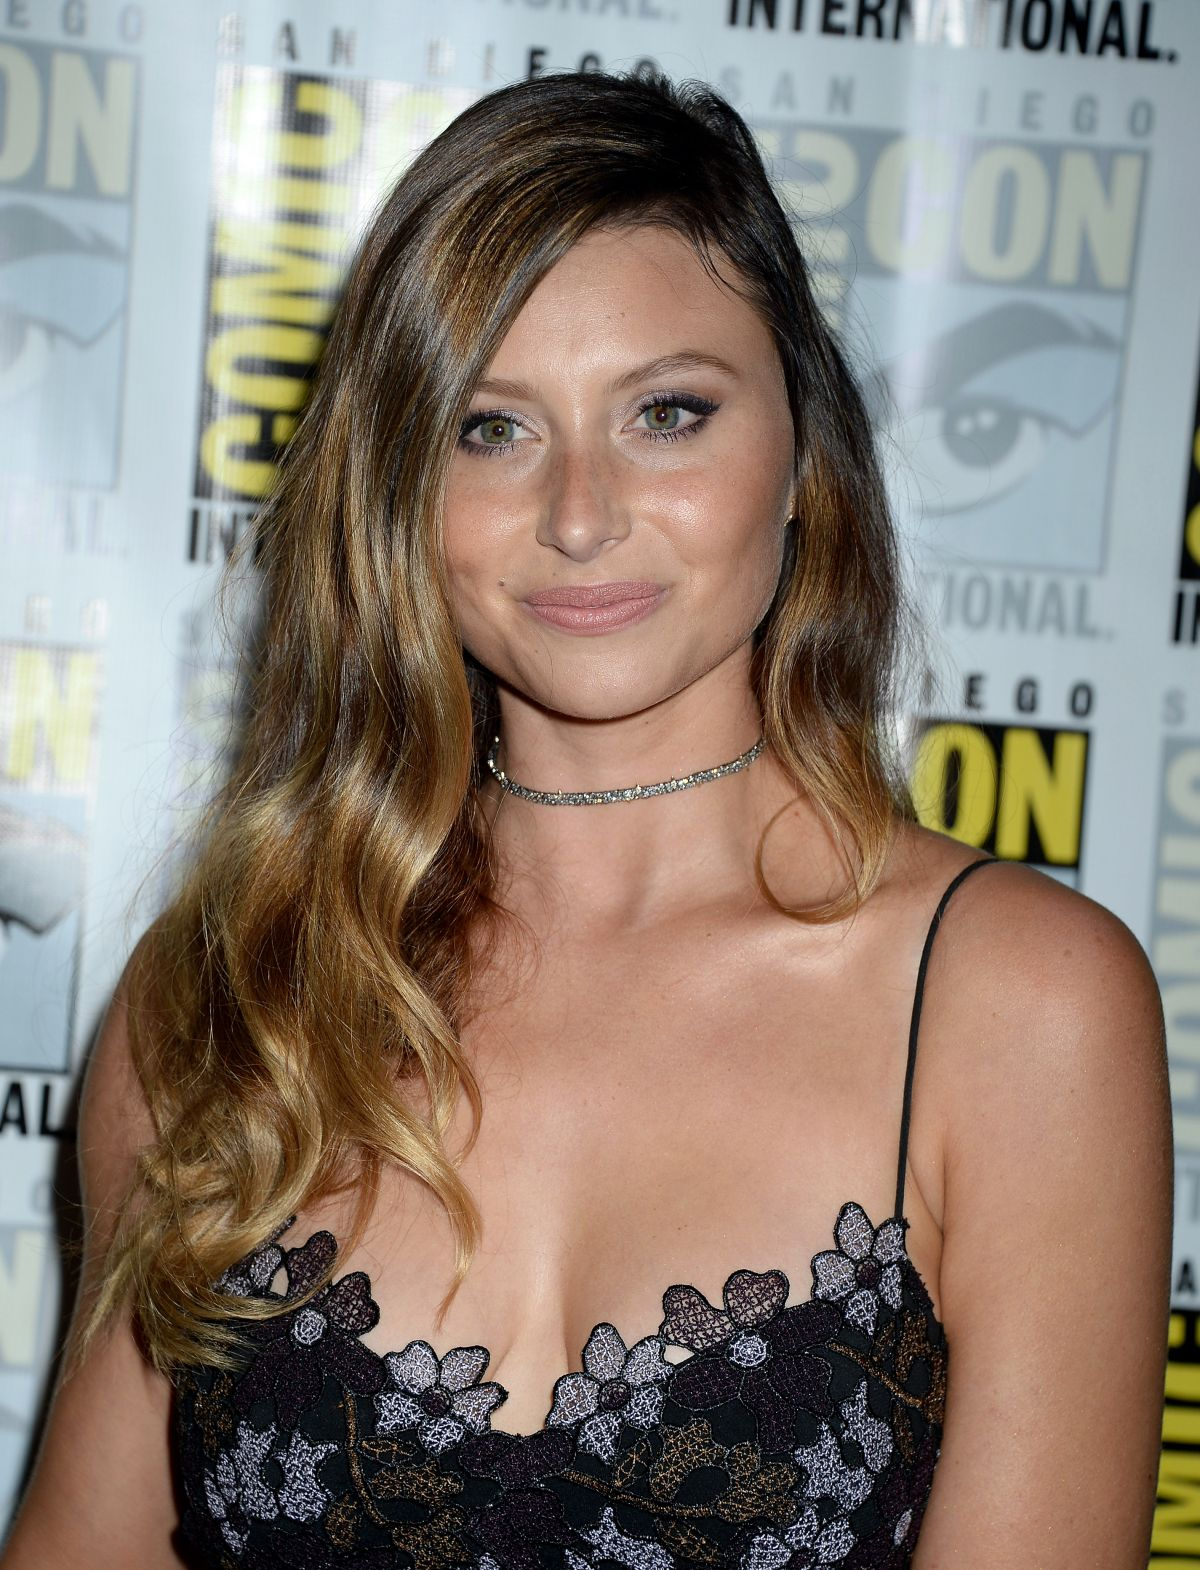 ALYSON ALY MICHALKA at Izombie Press Line at Comic-con in San Diego 07/22/2016